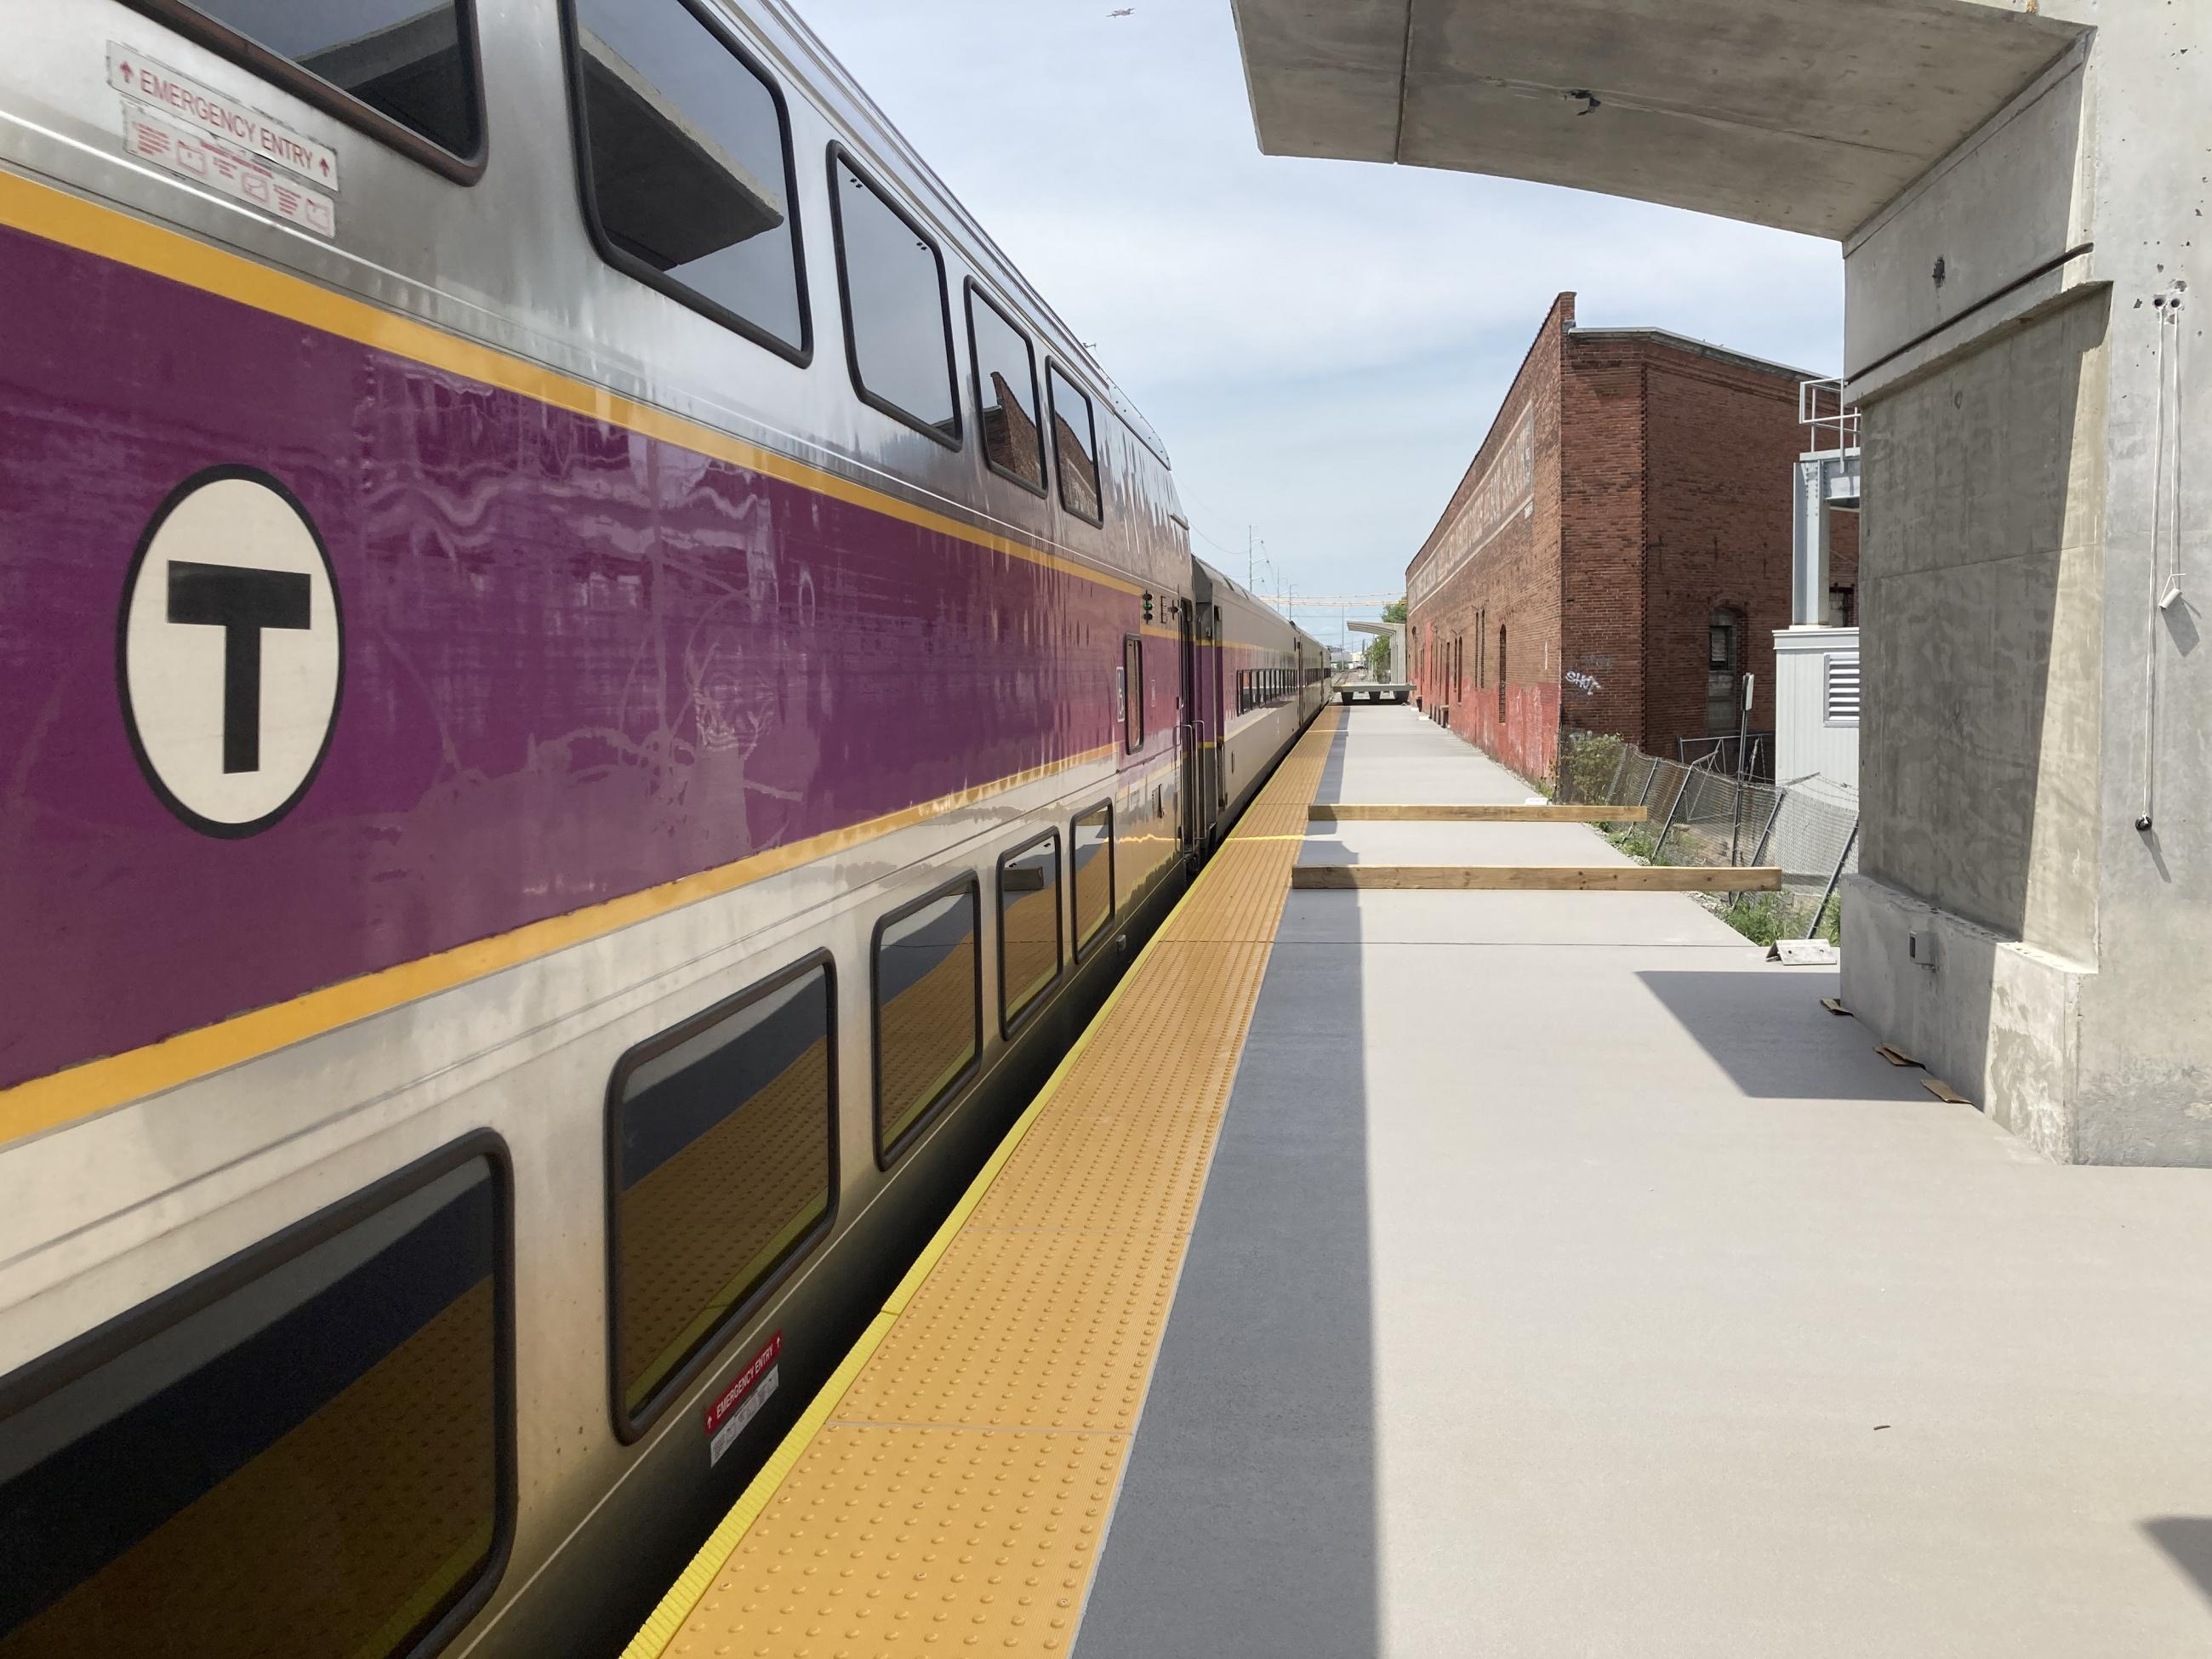 A Commuter Rail train is stopped at the inbound platform at Chelsea Station next to a newly installed platform.